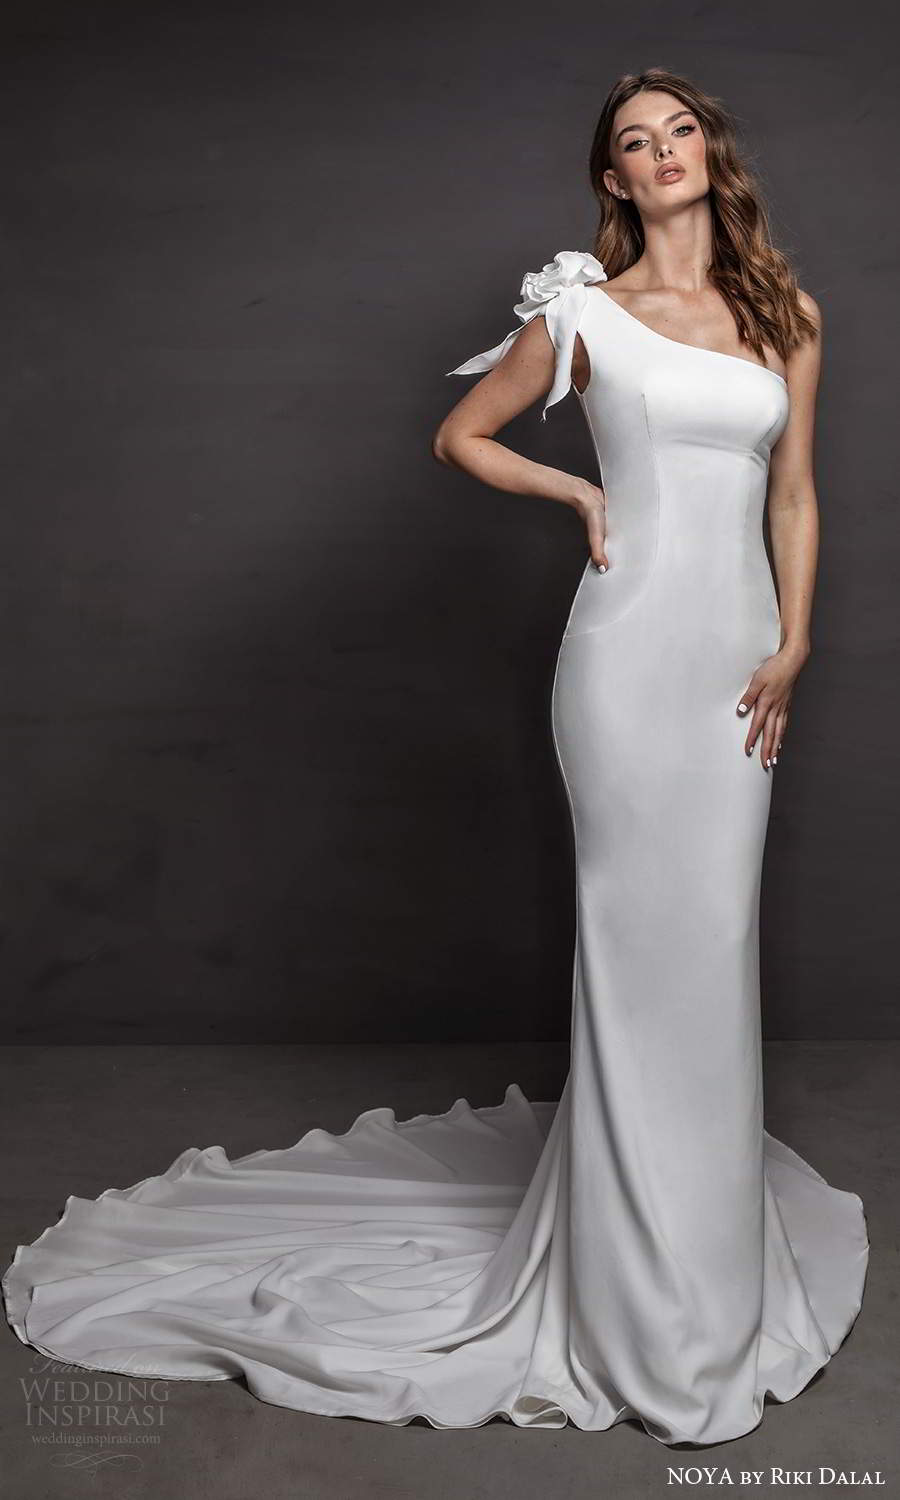 noya riki dalal 2021 bridal one shoulder strap asymmetic neckline clean minimalist sheath wedding dress chapel train (4) mv